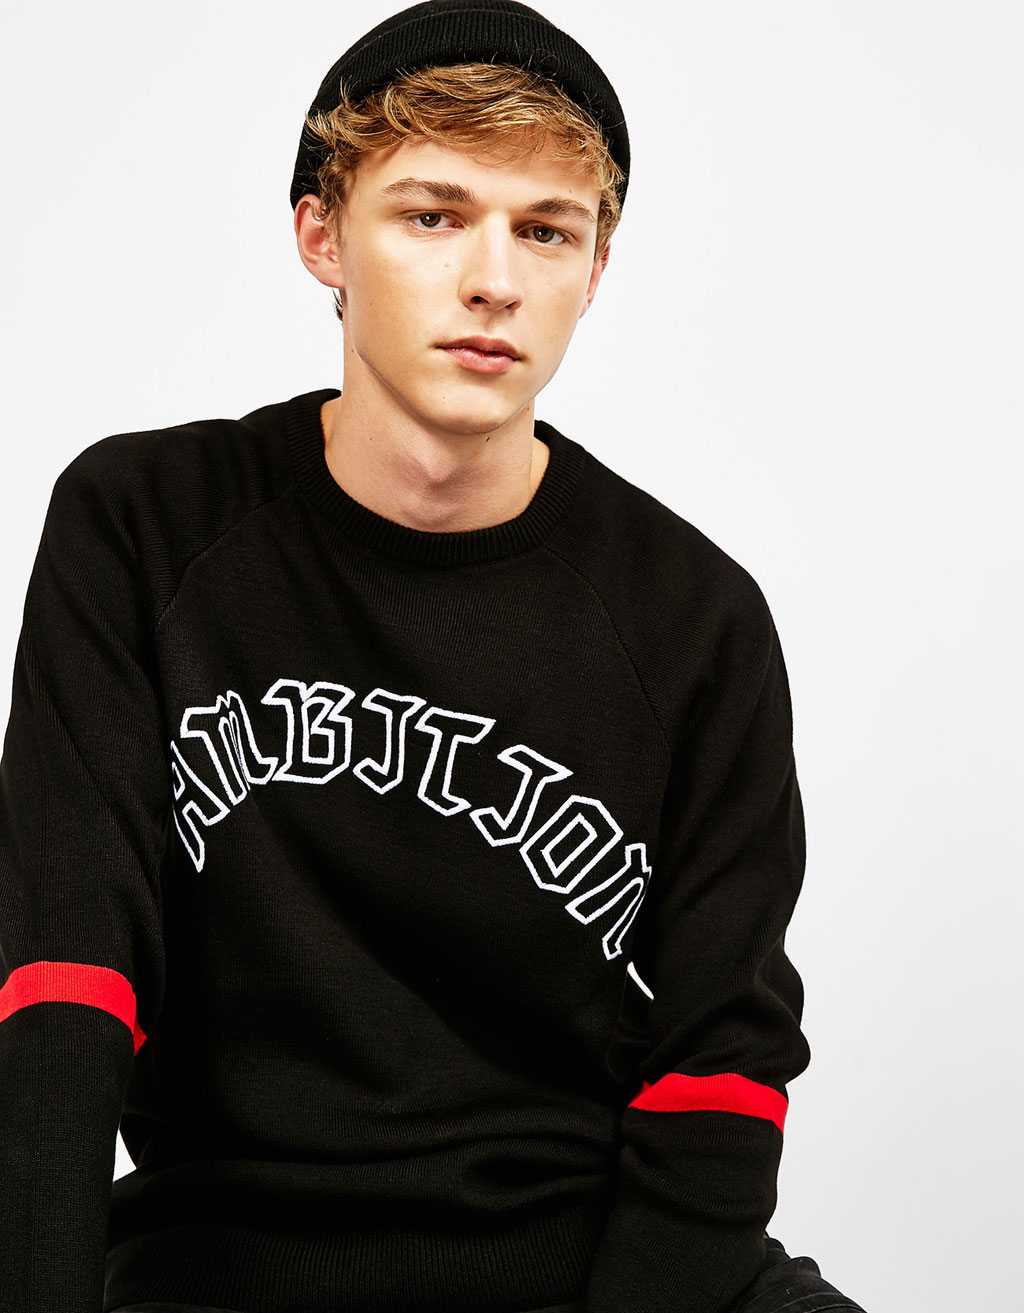 Ambition embroidered text sweater